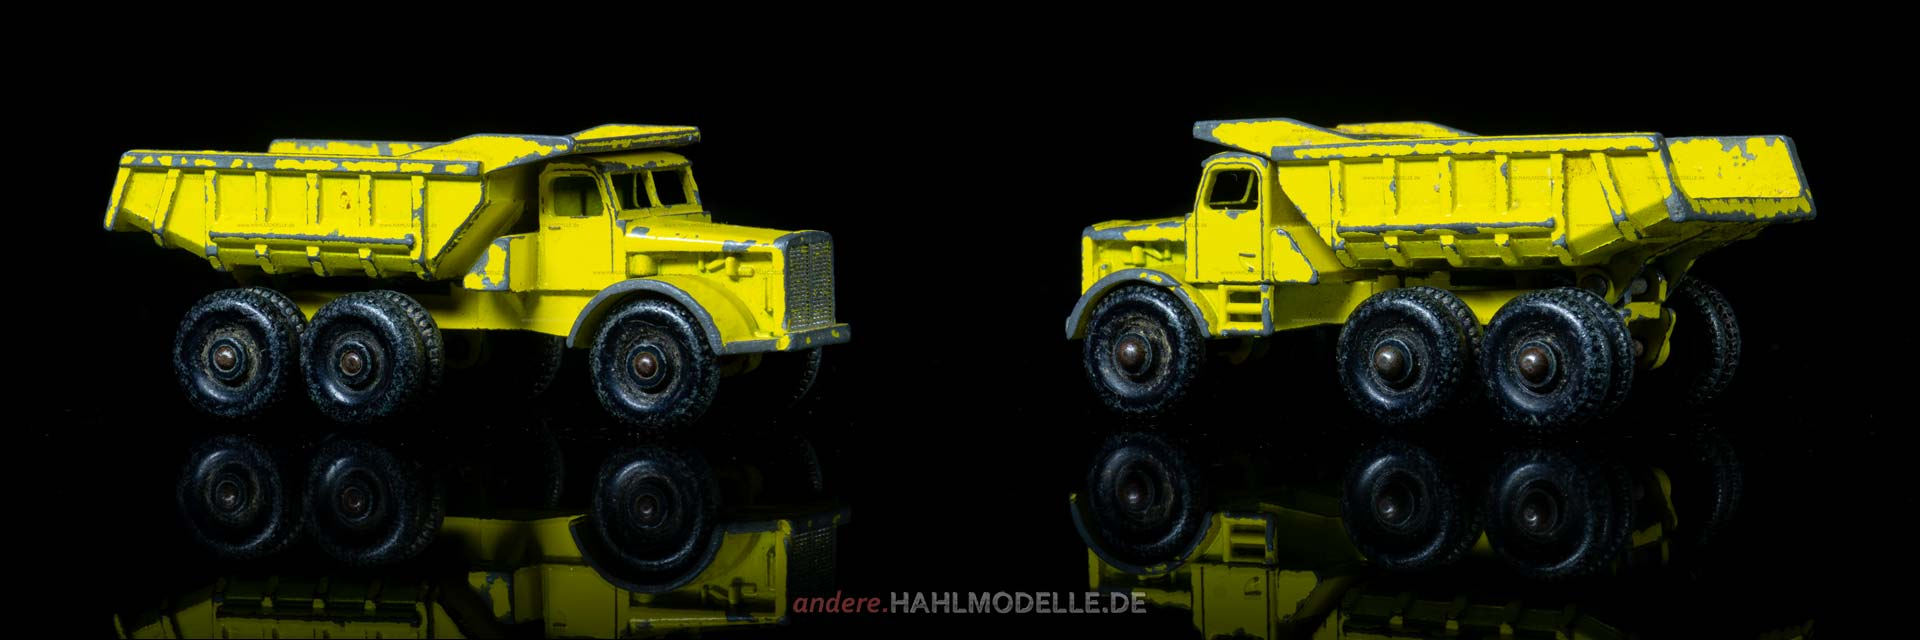 "Euclid Truck R24 (10-Wheel Quarry Truck) | Muldenkipper | Lesney Products & Co. Ltd. | 1:46 | Matchbox ""Euclid Dump Truck"" 